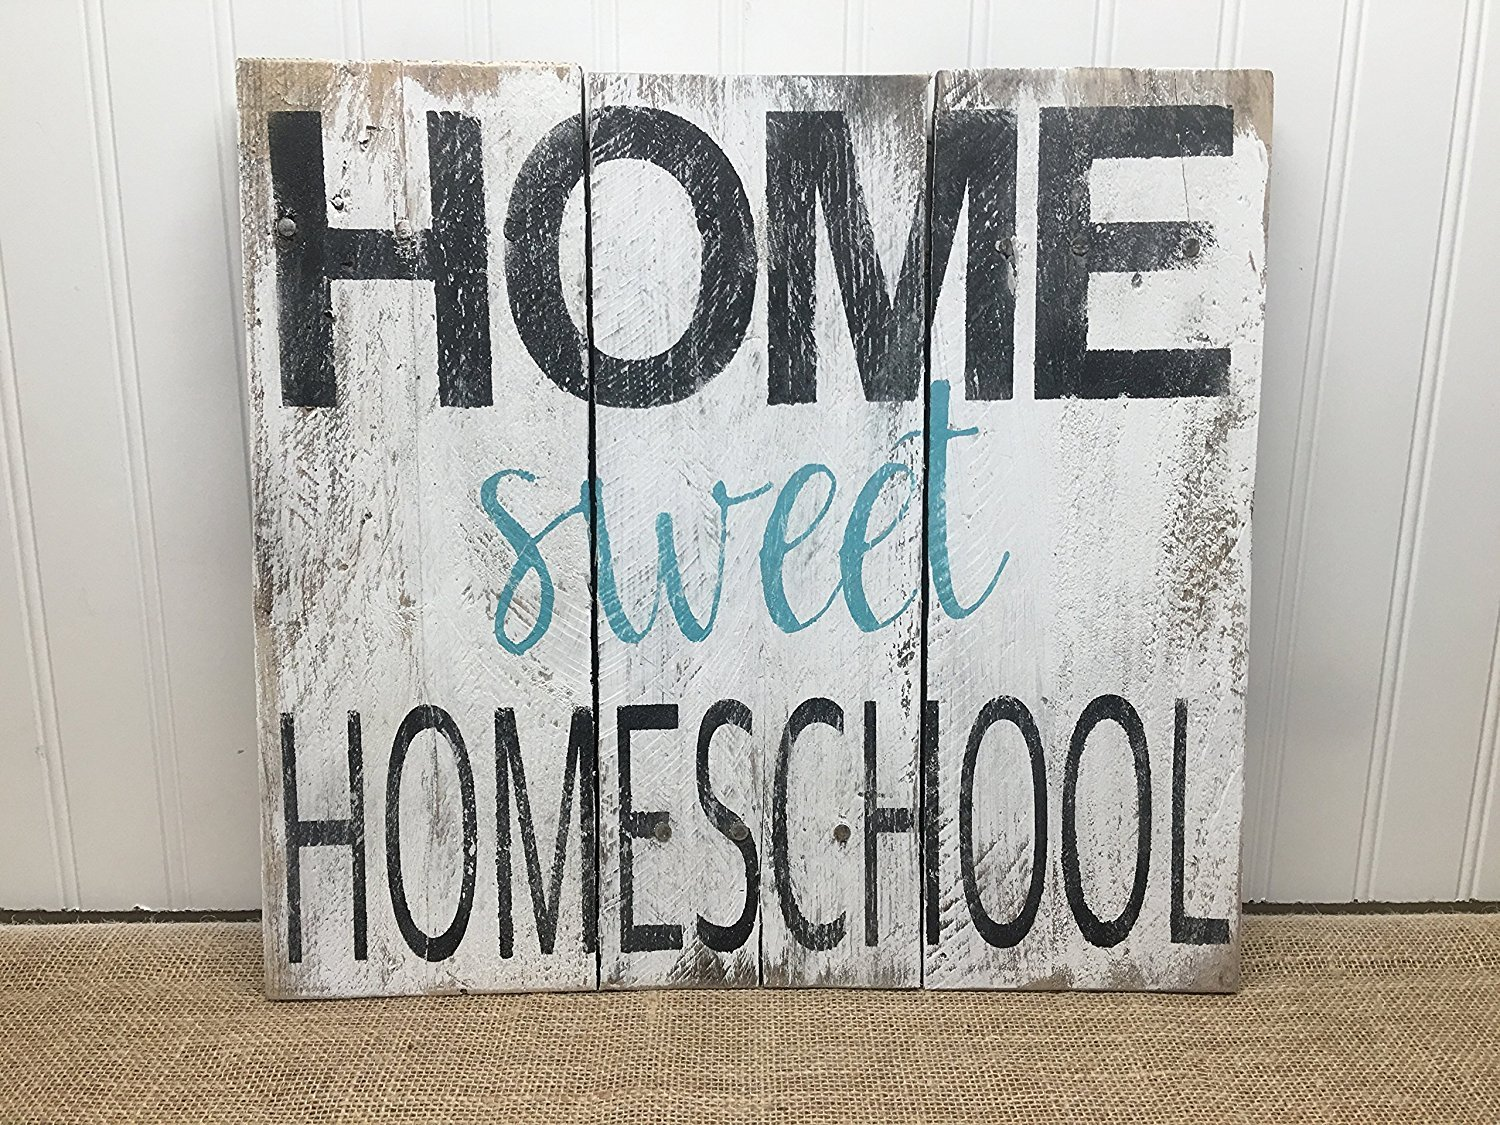 PotteLove Homeschool Quote Reclaimed Wood Pallet Sign Home Decor 16x13